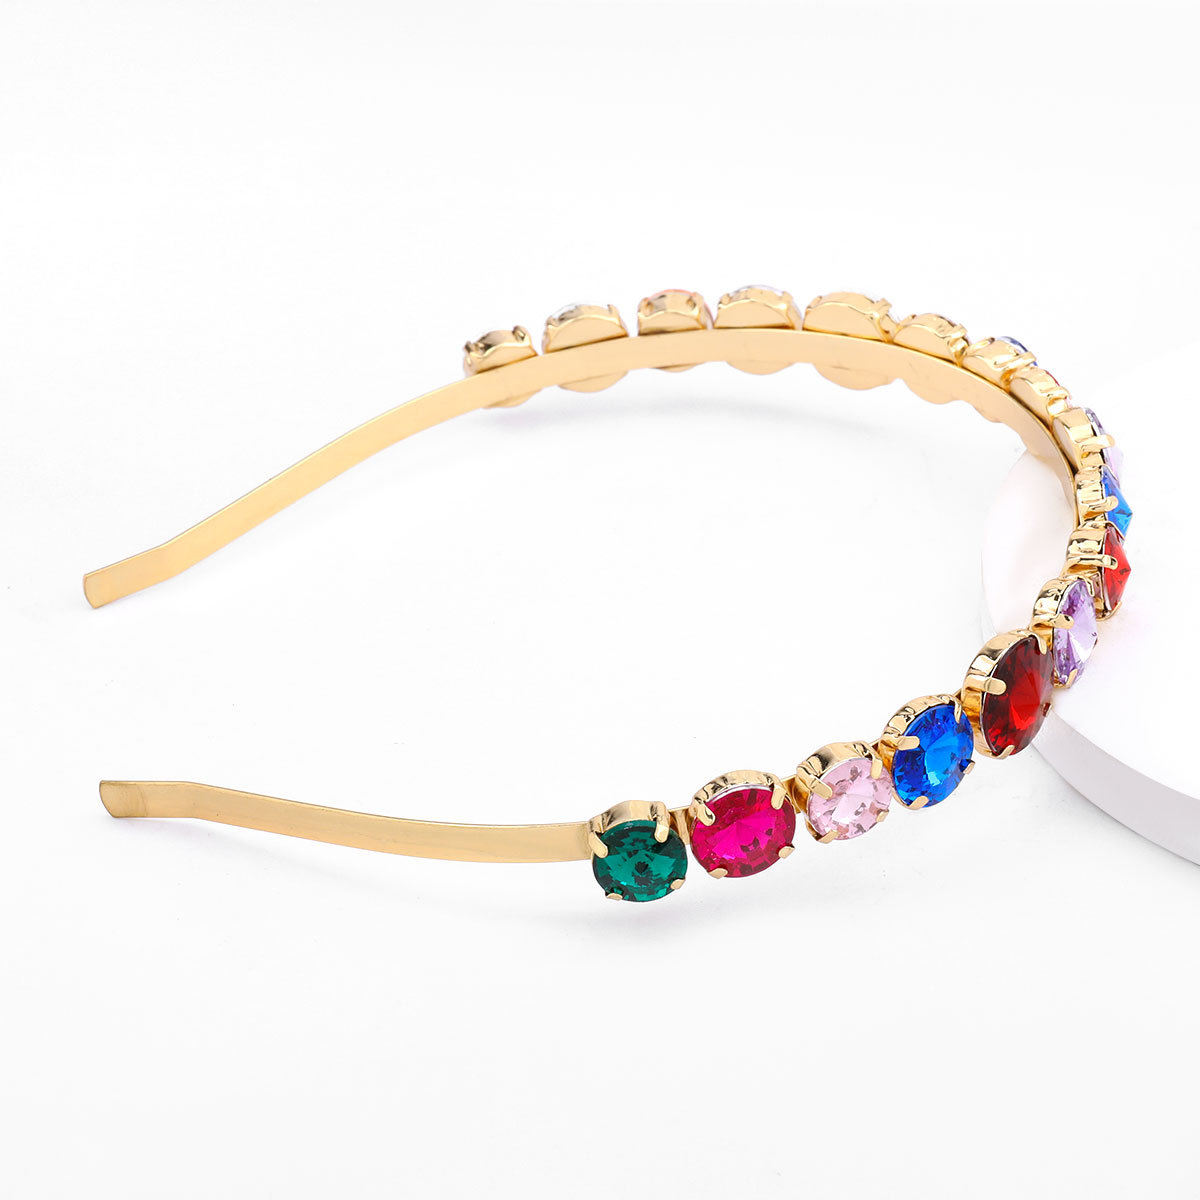 Hot-selling fashion alloy diamond-studded round glass women's exquisite hair accessories nihaojewelry NHJE238806